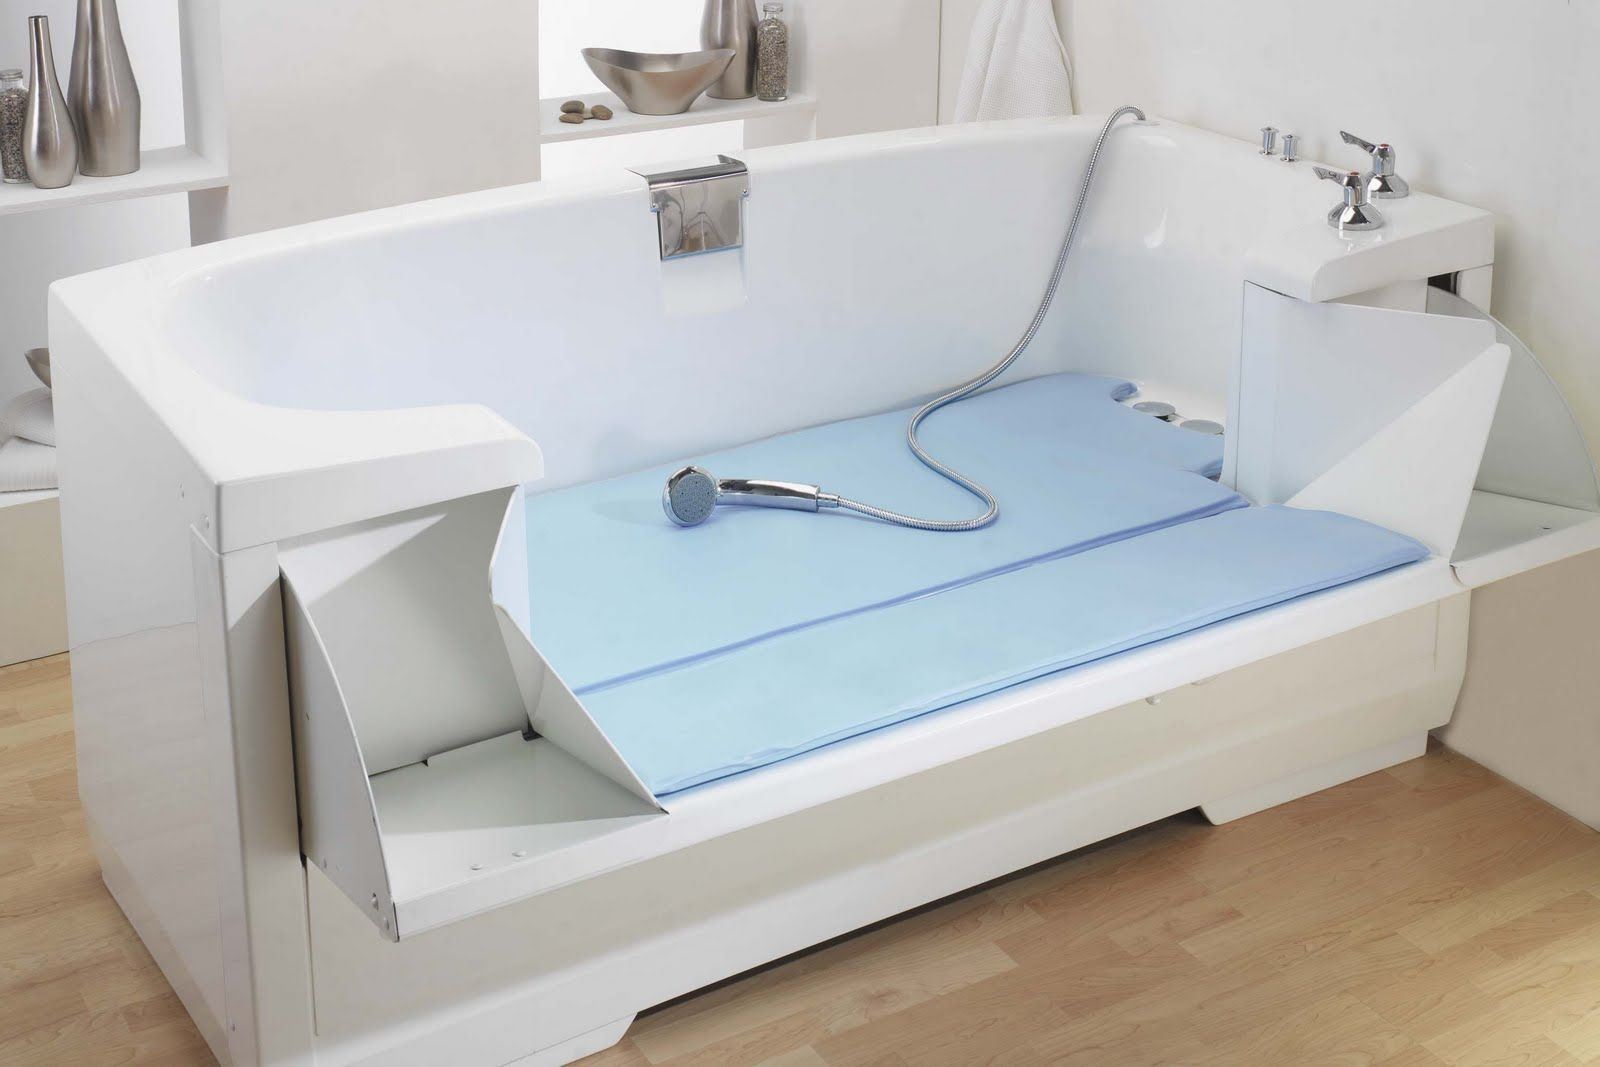 Handicapper Tubs Bathtubs For The Elderly And Disabled Disabled Bathroom Dream House